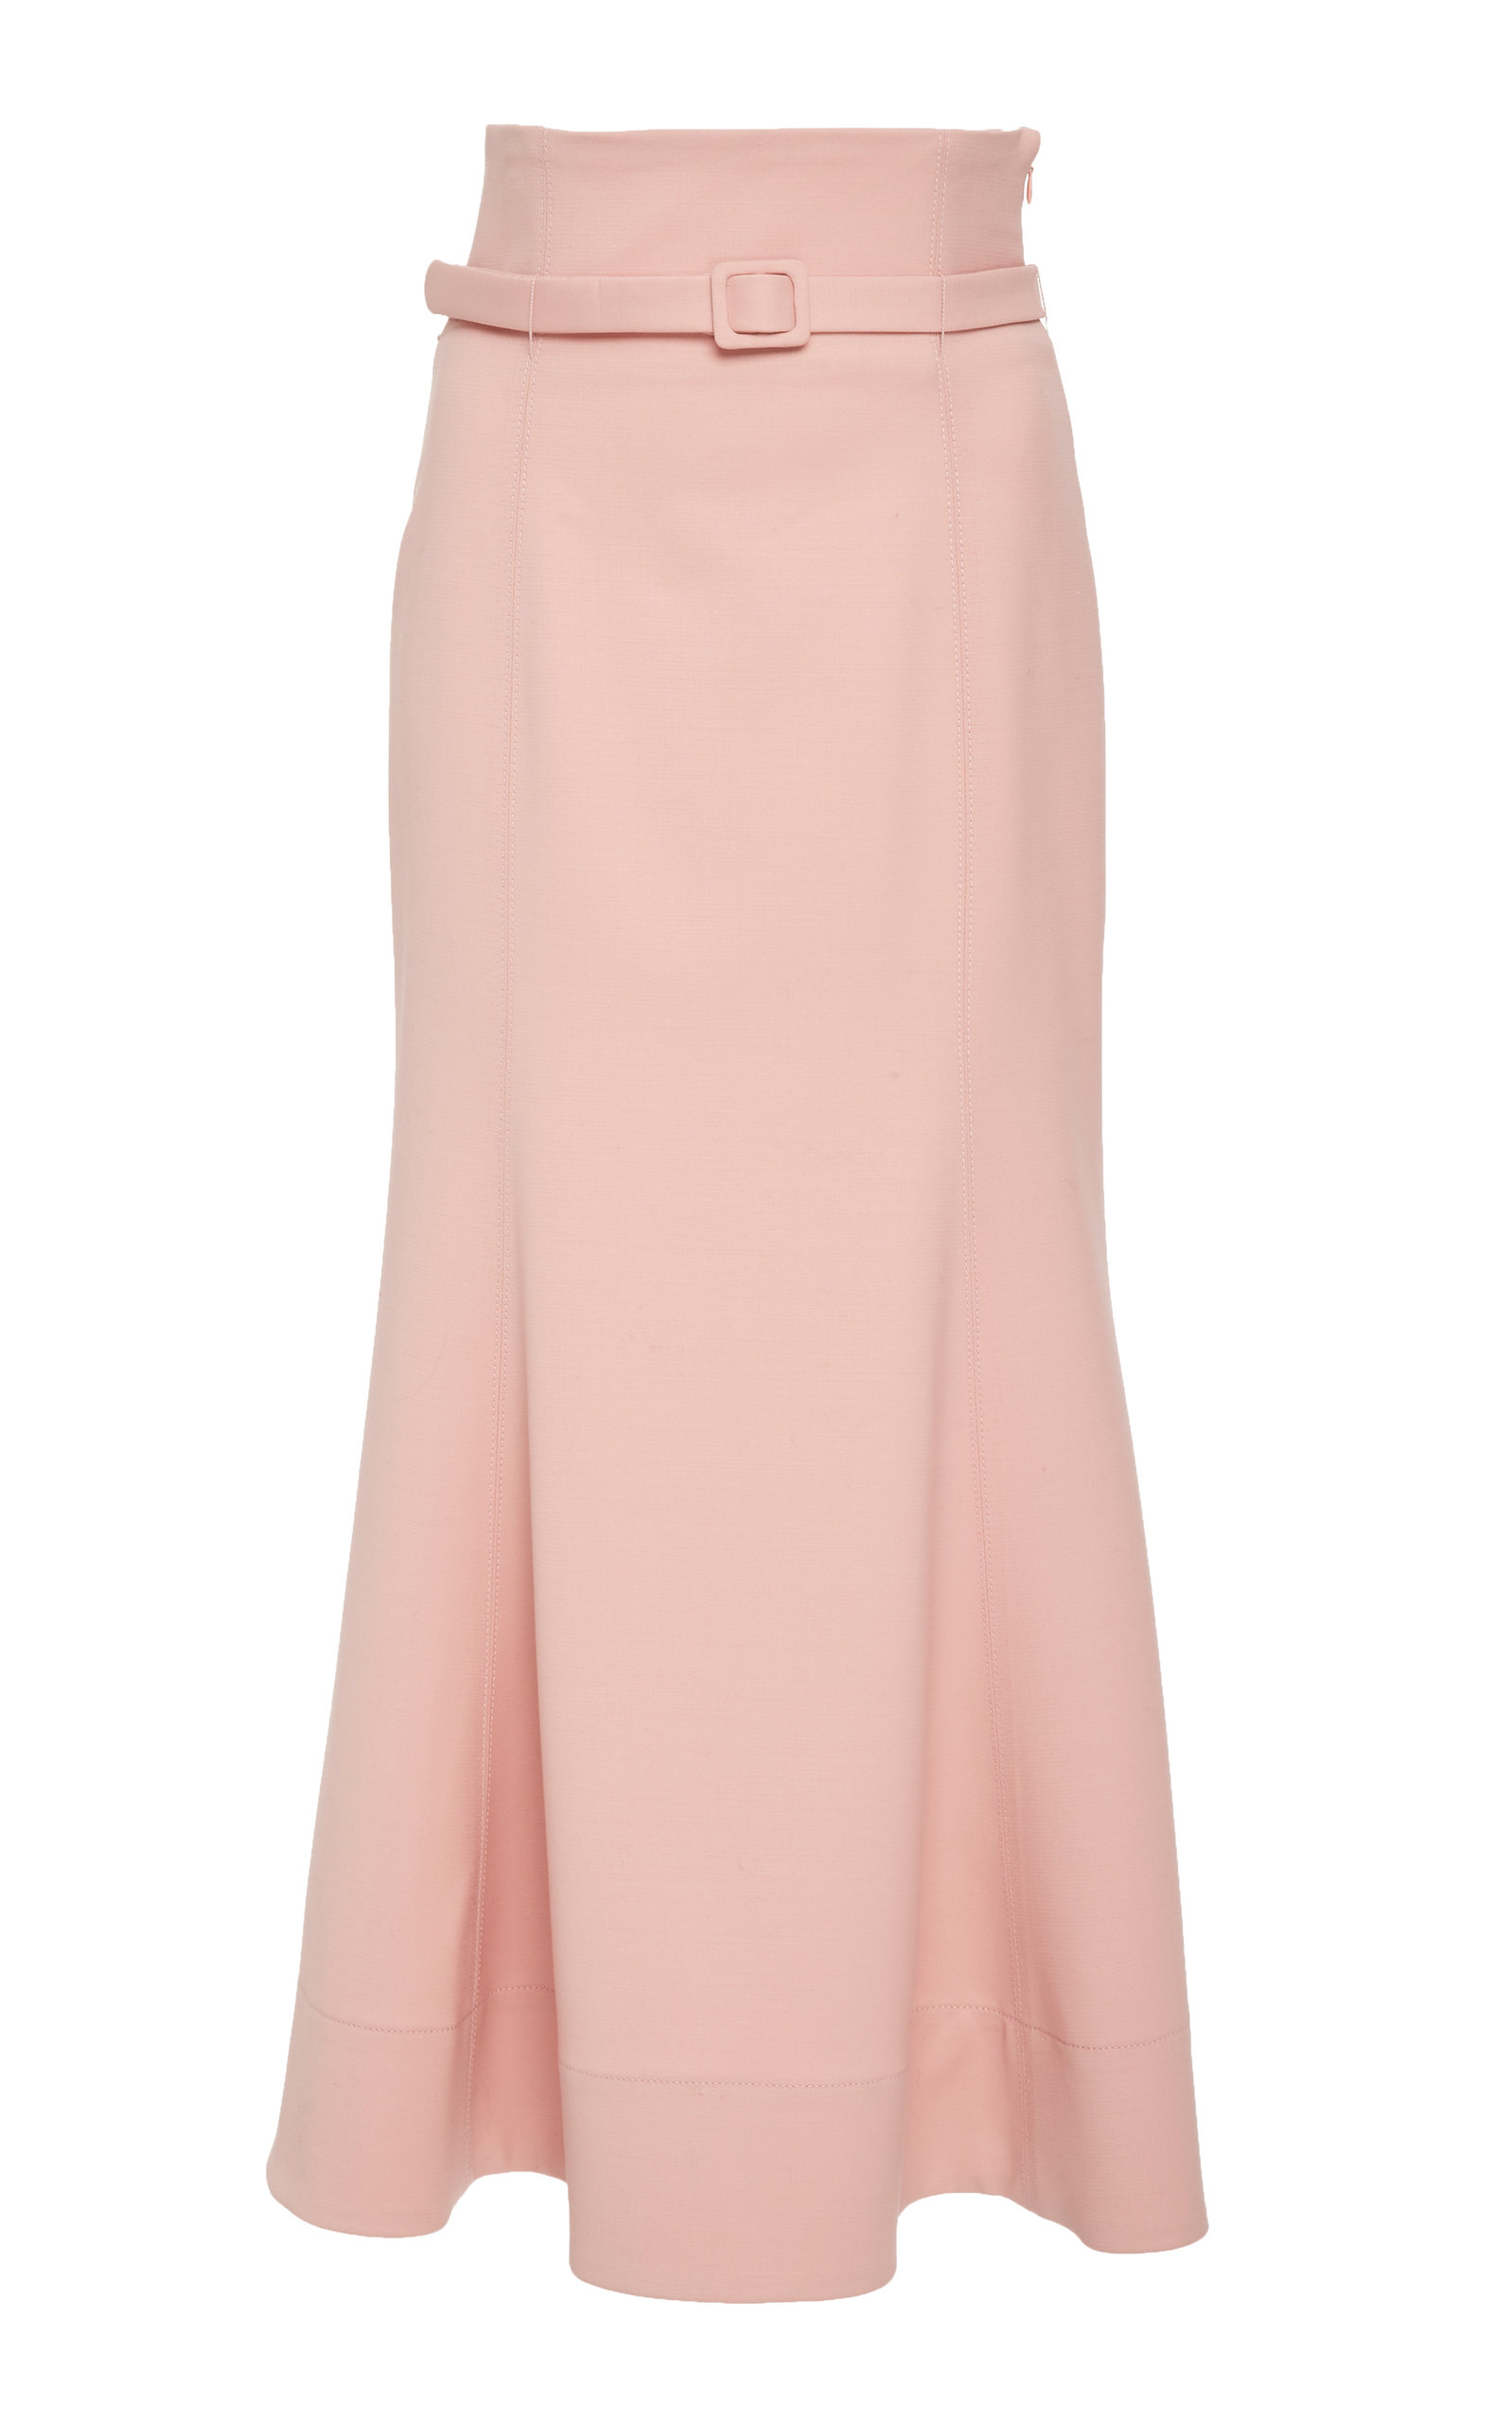 Severino Wool-Blend Midi Skirt in Pink